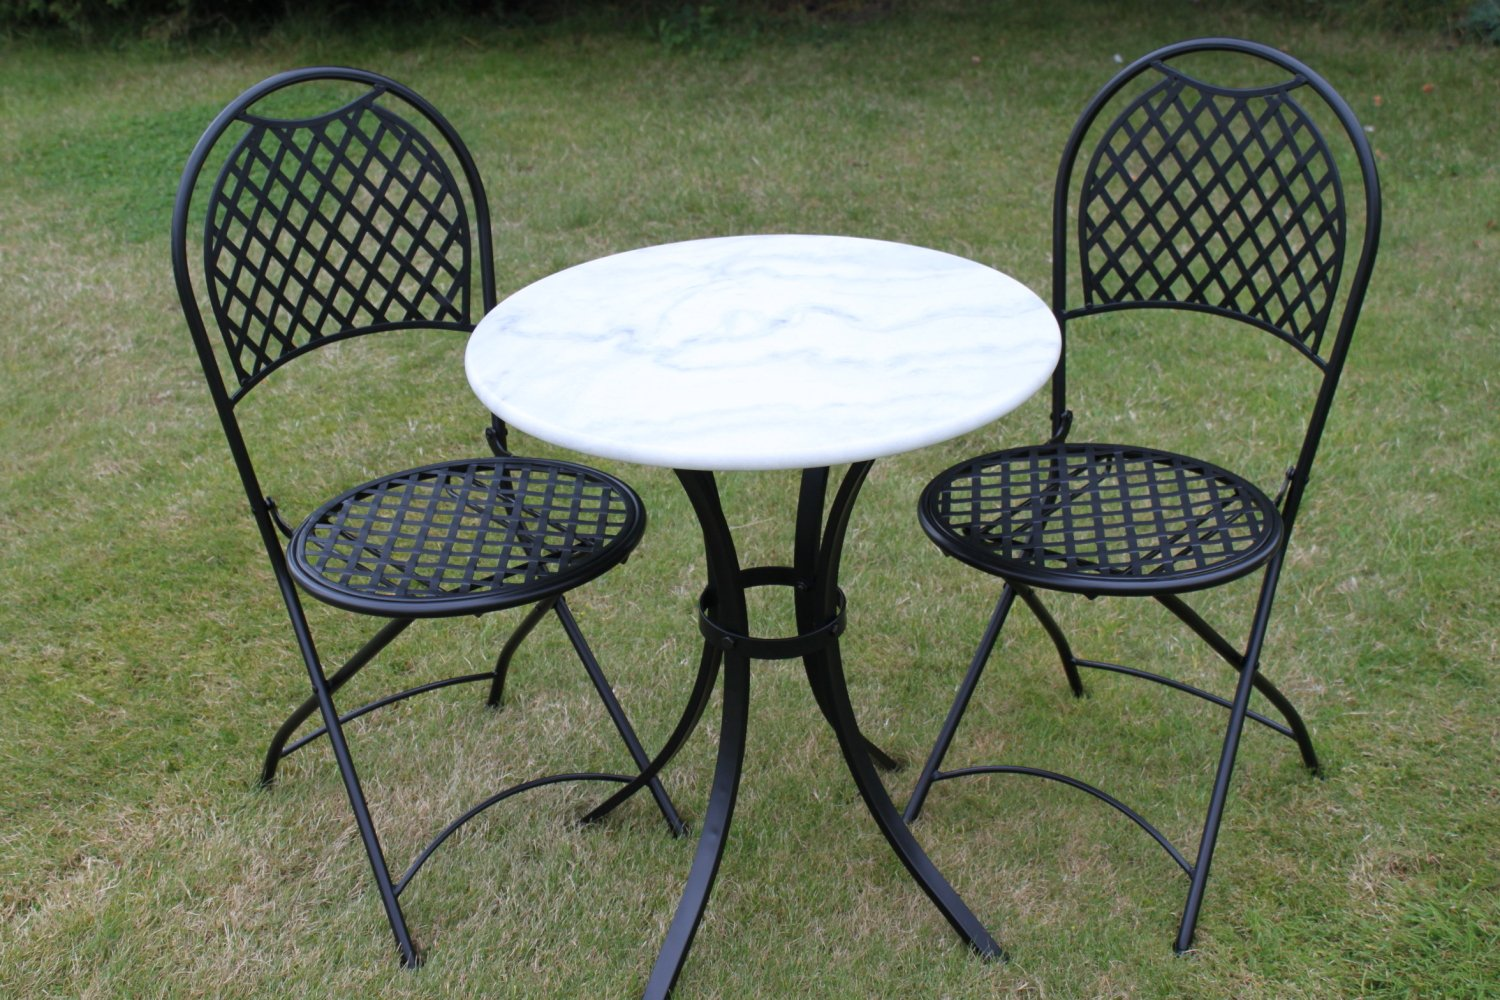 White Marble Top Bistro Table U0026 2 Chairs Set   Great For The Garden Or  Patio: Amazon.co.uk: Garden U0026 Outdoors